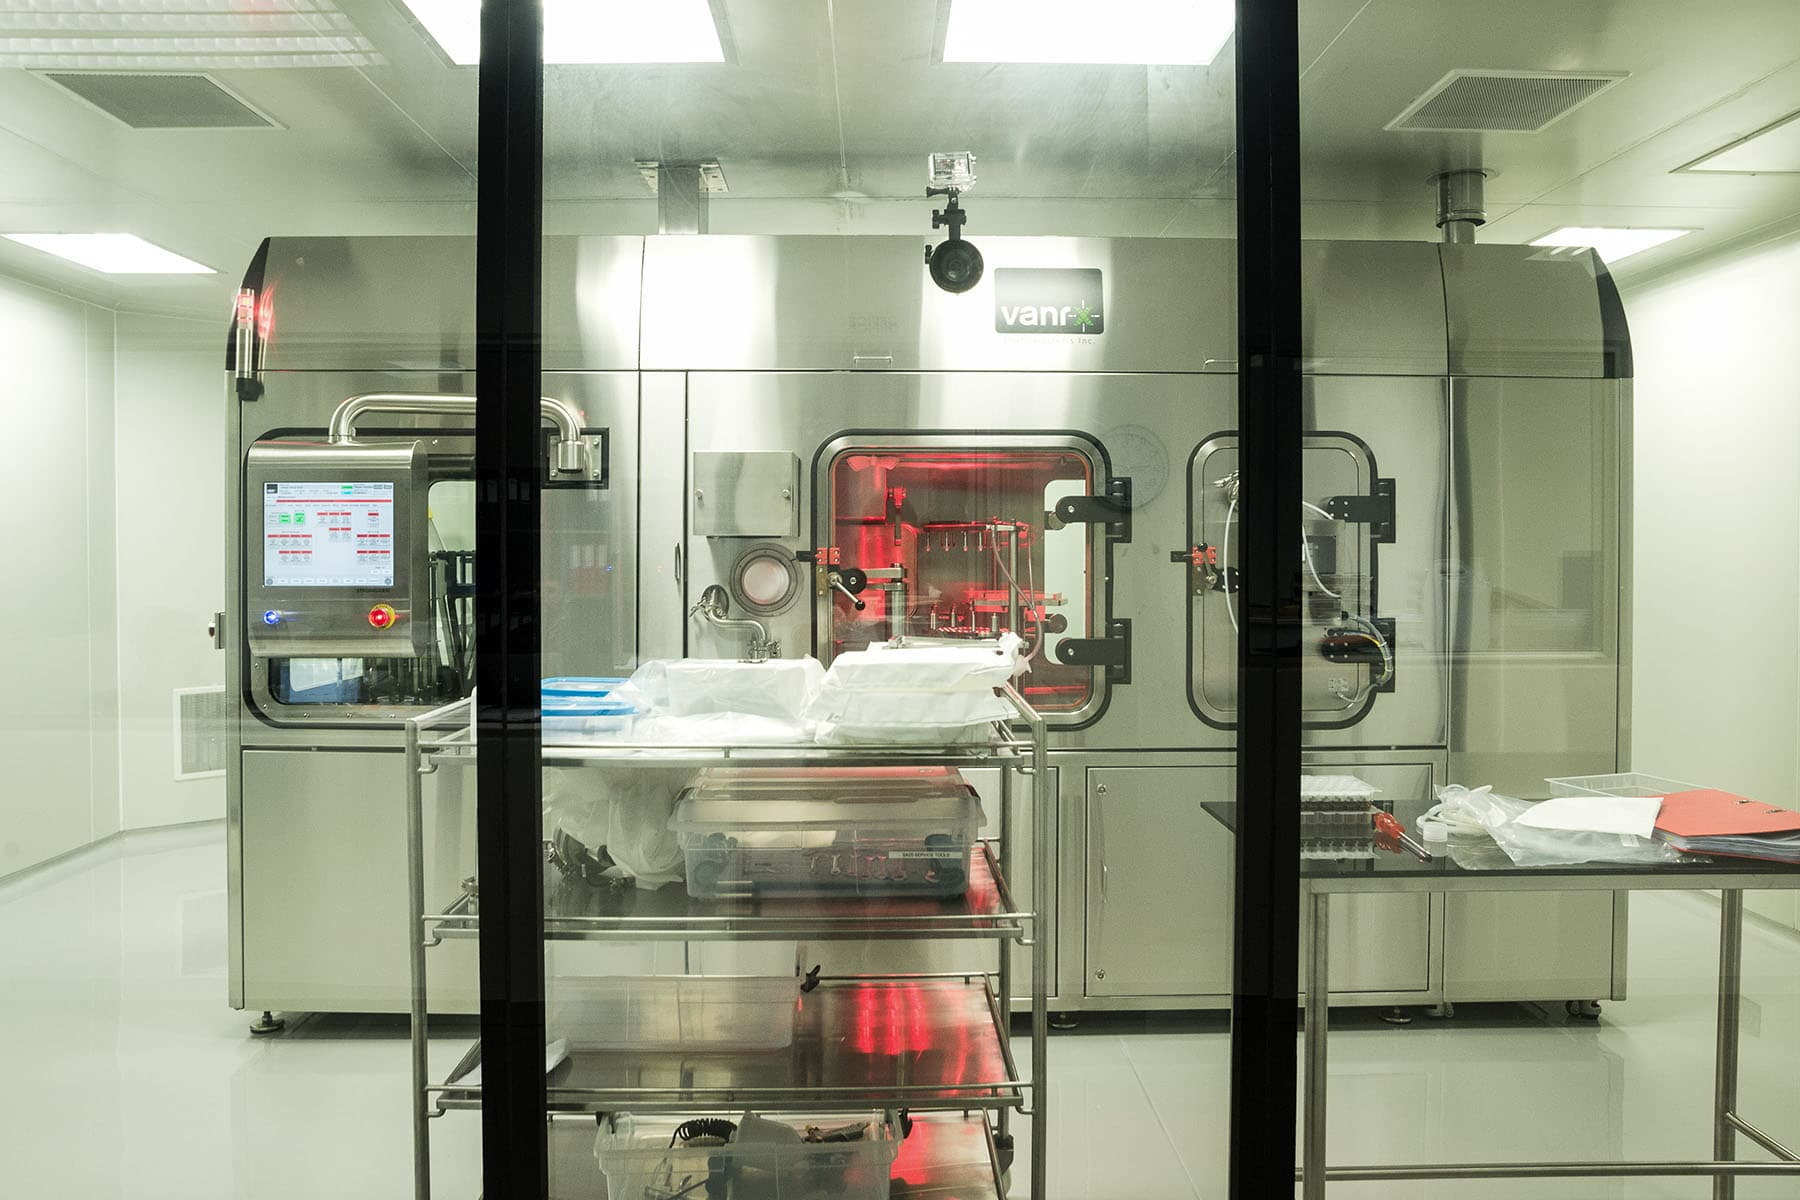 Vanrx's aseptic filling technology can speed up the design, build and validation process to start a filling facility.